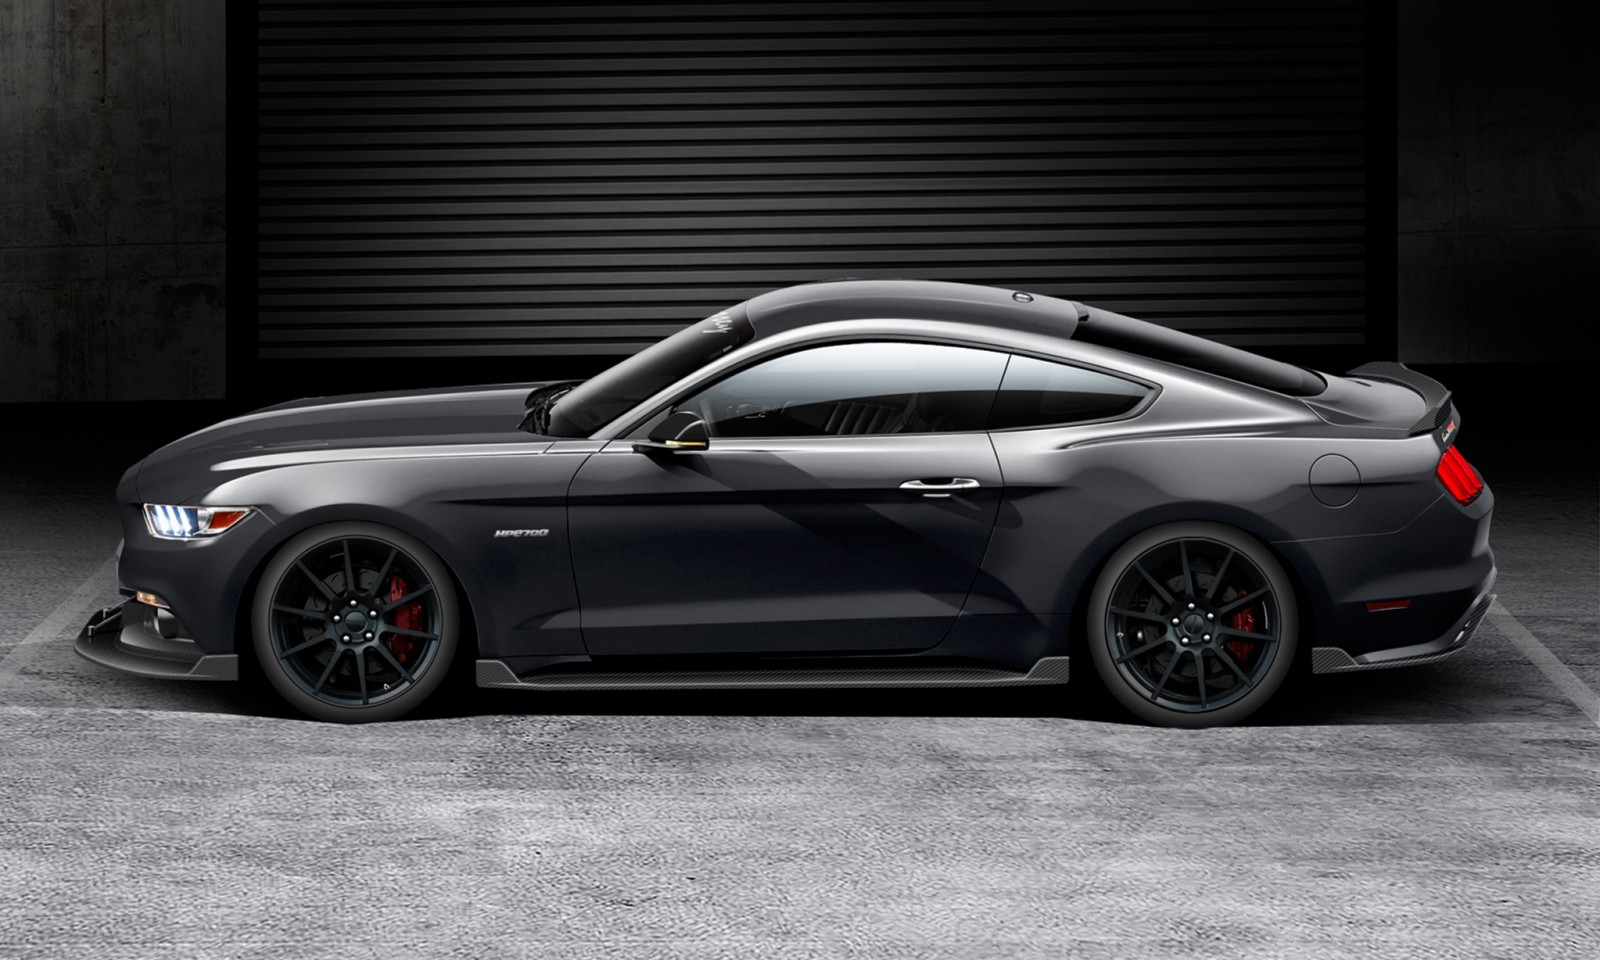 2015 Hennessey HPE700 Mustang 7